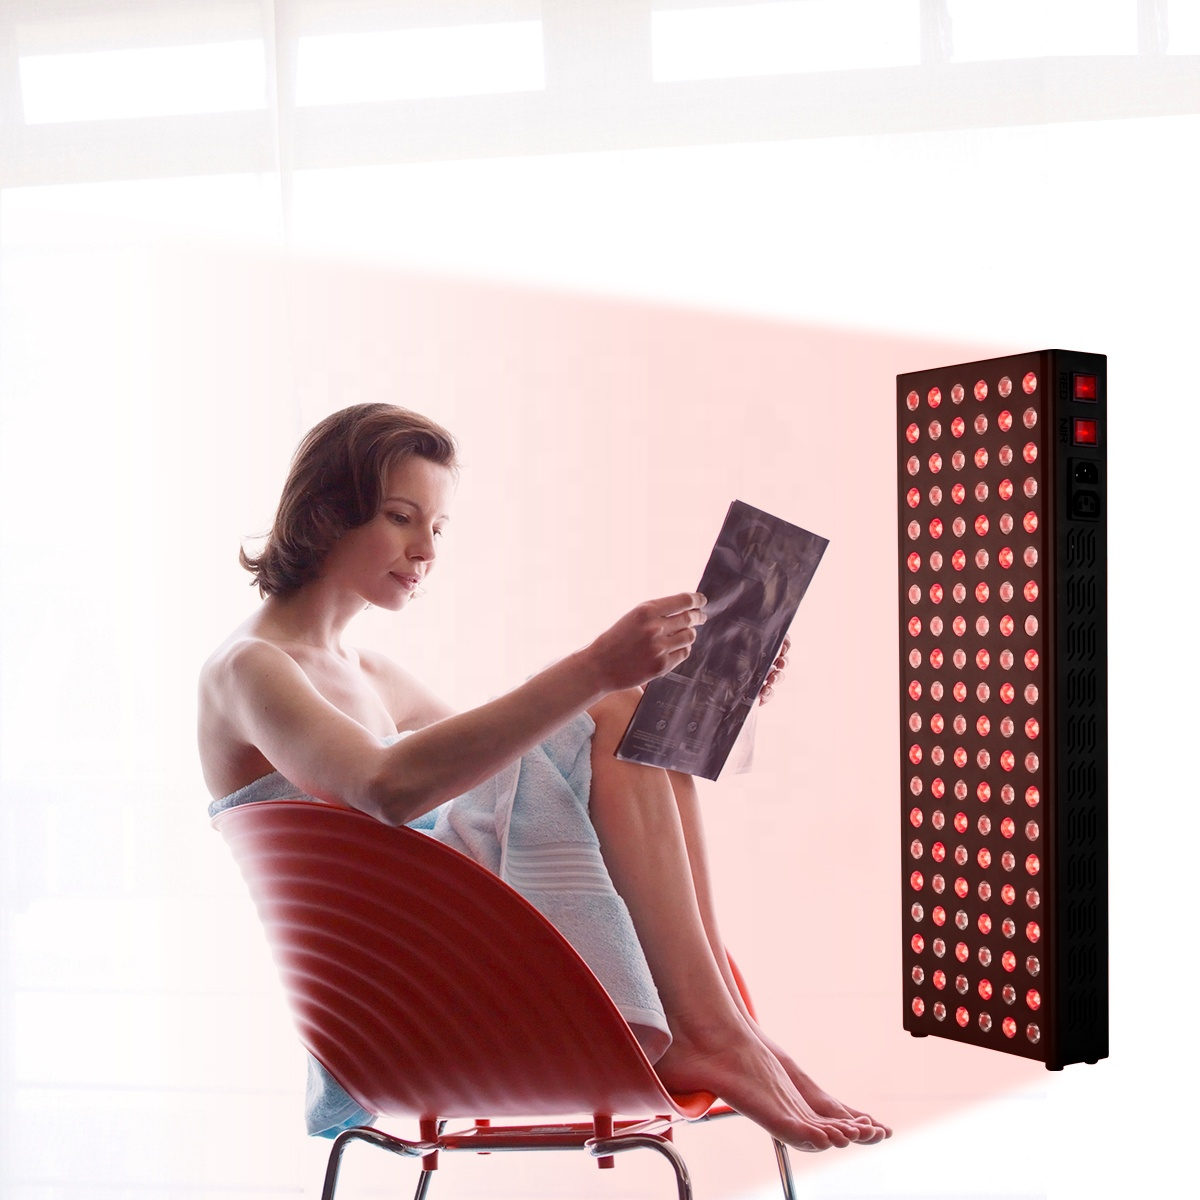 SODOLUX OEM/ODM Factory Wholesale Anti Aging Pain Relief PDT Therapy Machine Infared 600W half Body Red Light Therapy Panel